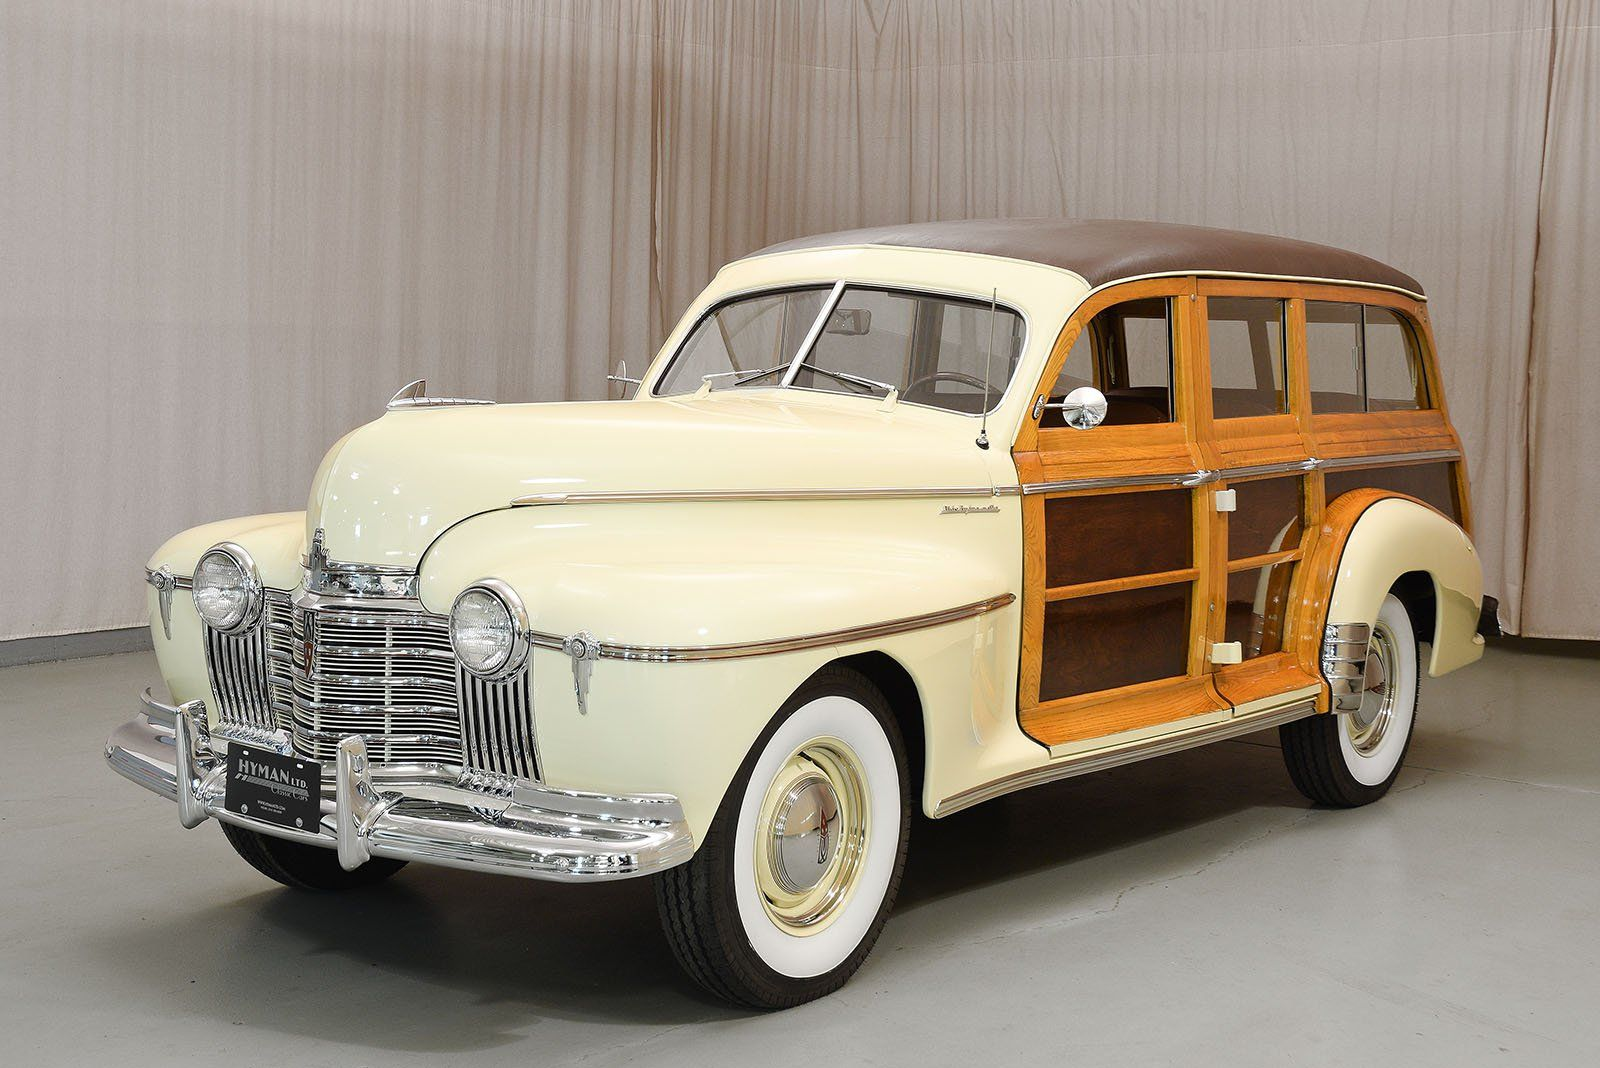 Pin by Charmaine Ezelyk on 1940s Classic Cars | Pinterest | Cars ...